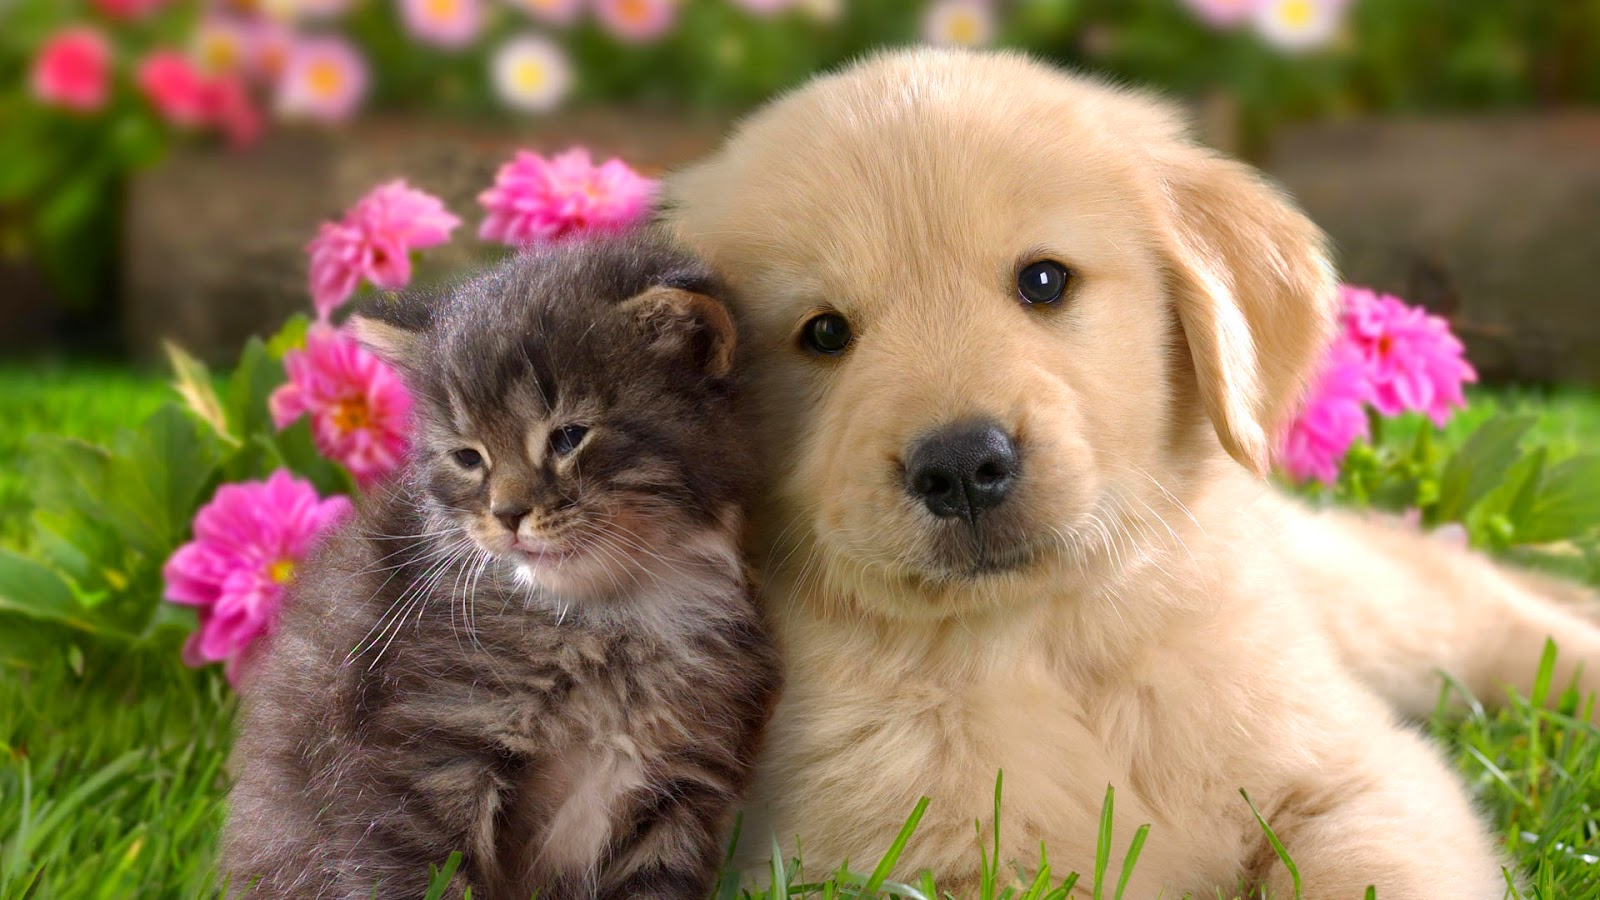 Cute Animal Wallpapers HD 4